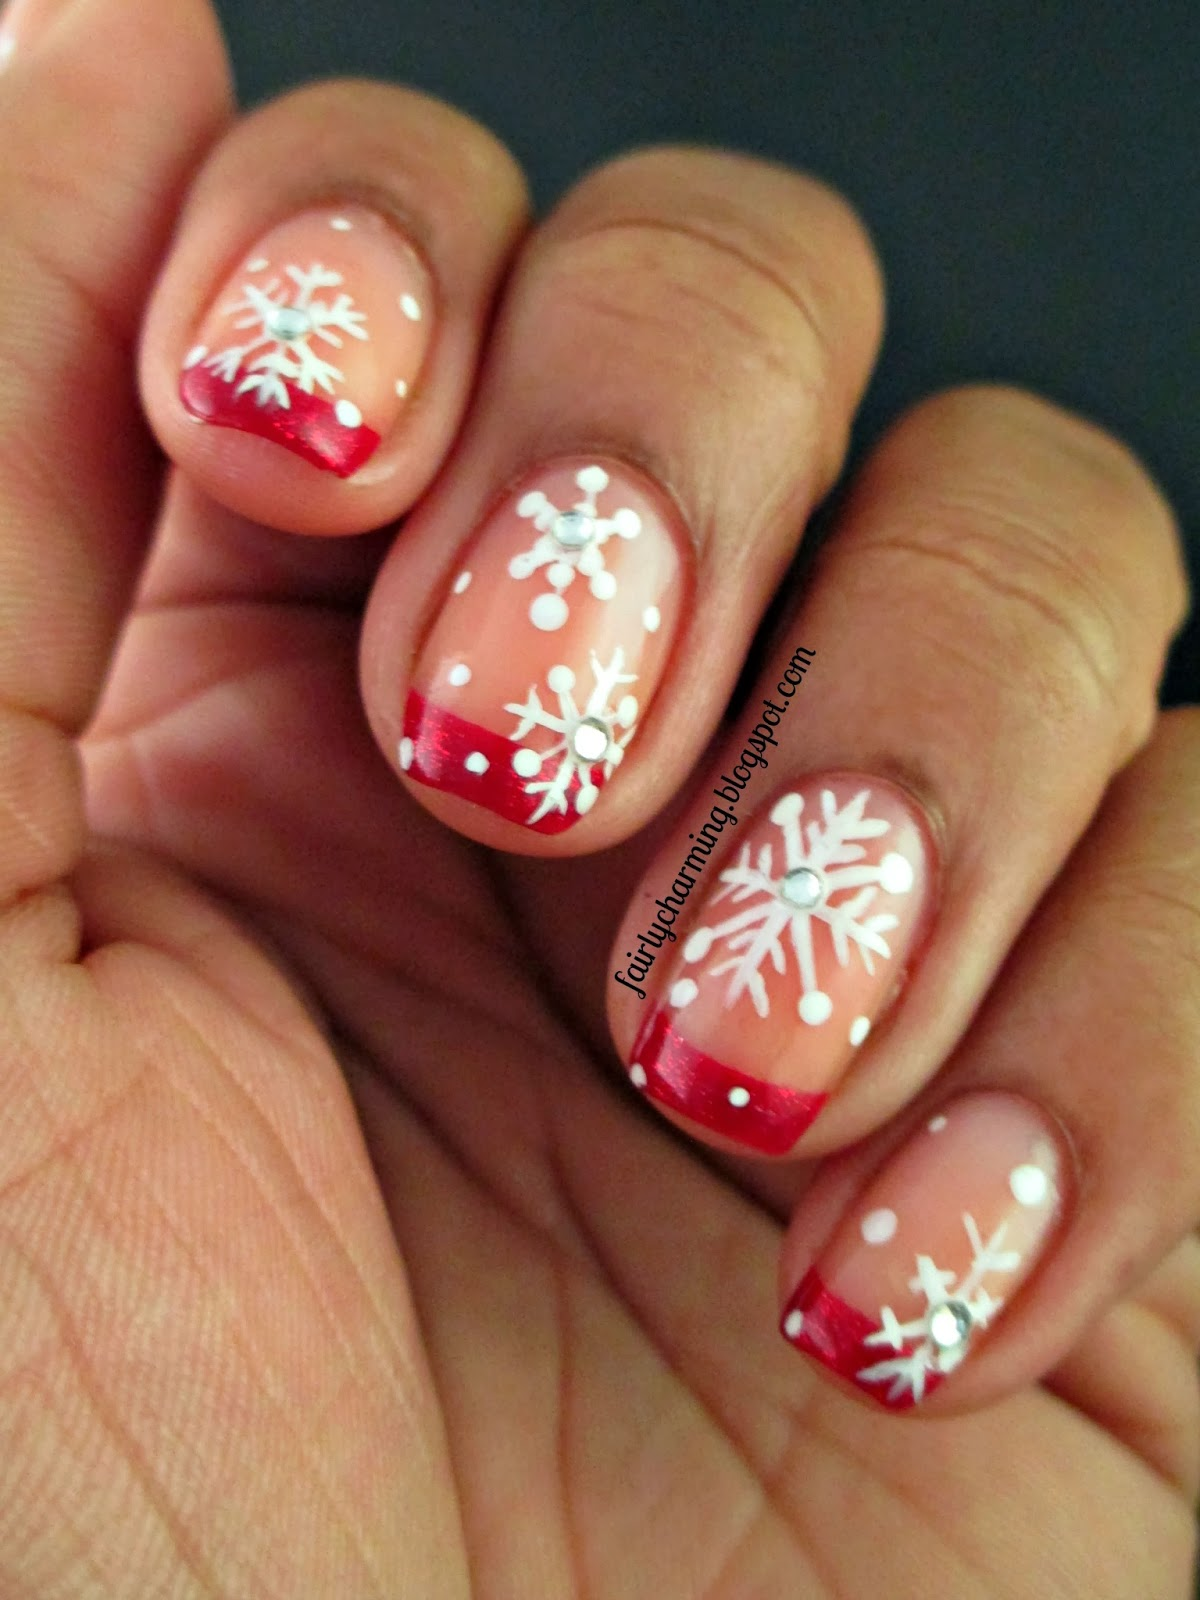 Fairly Charming: Snowflakies!